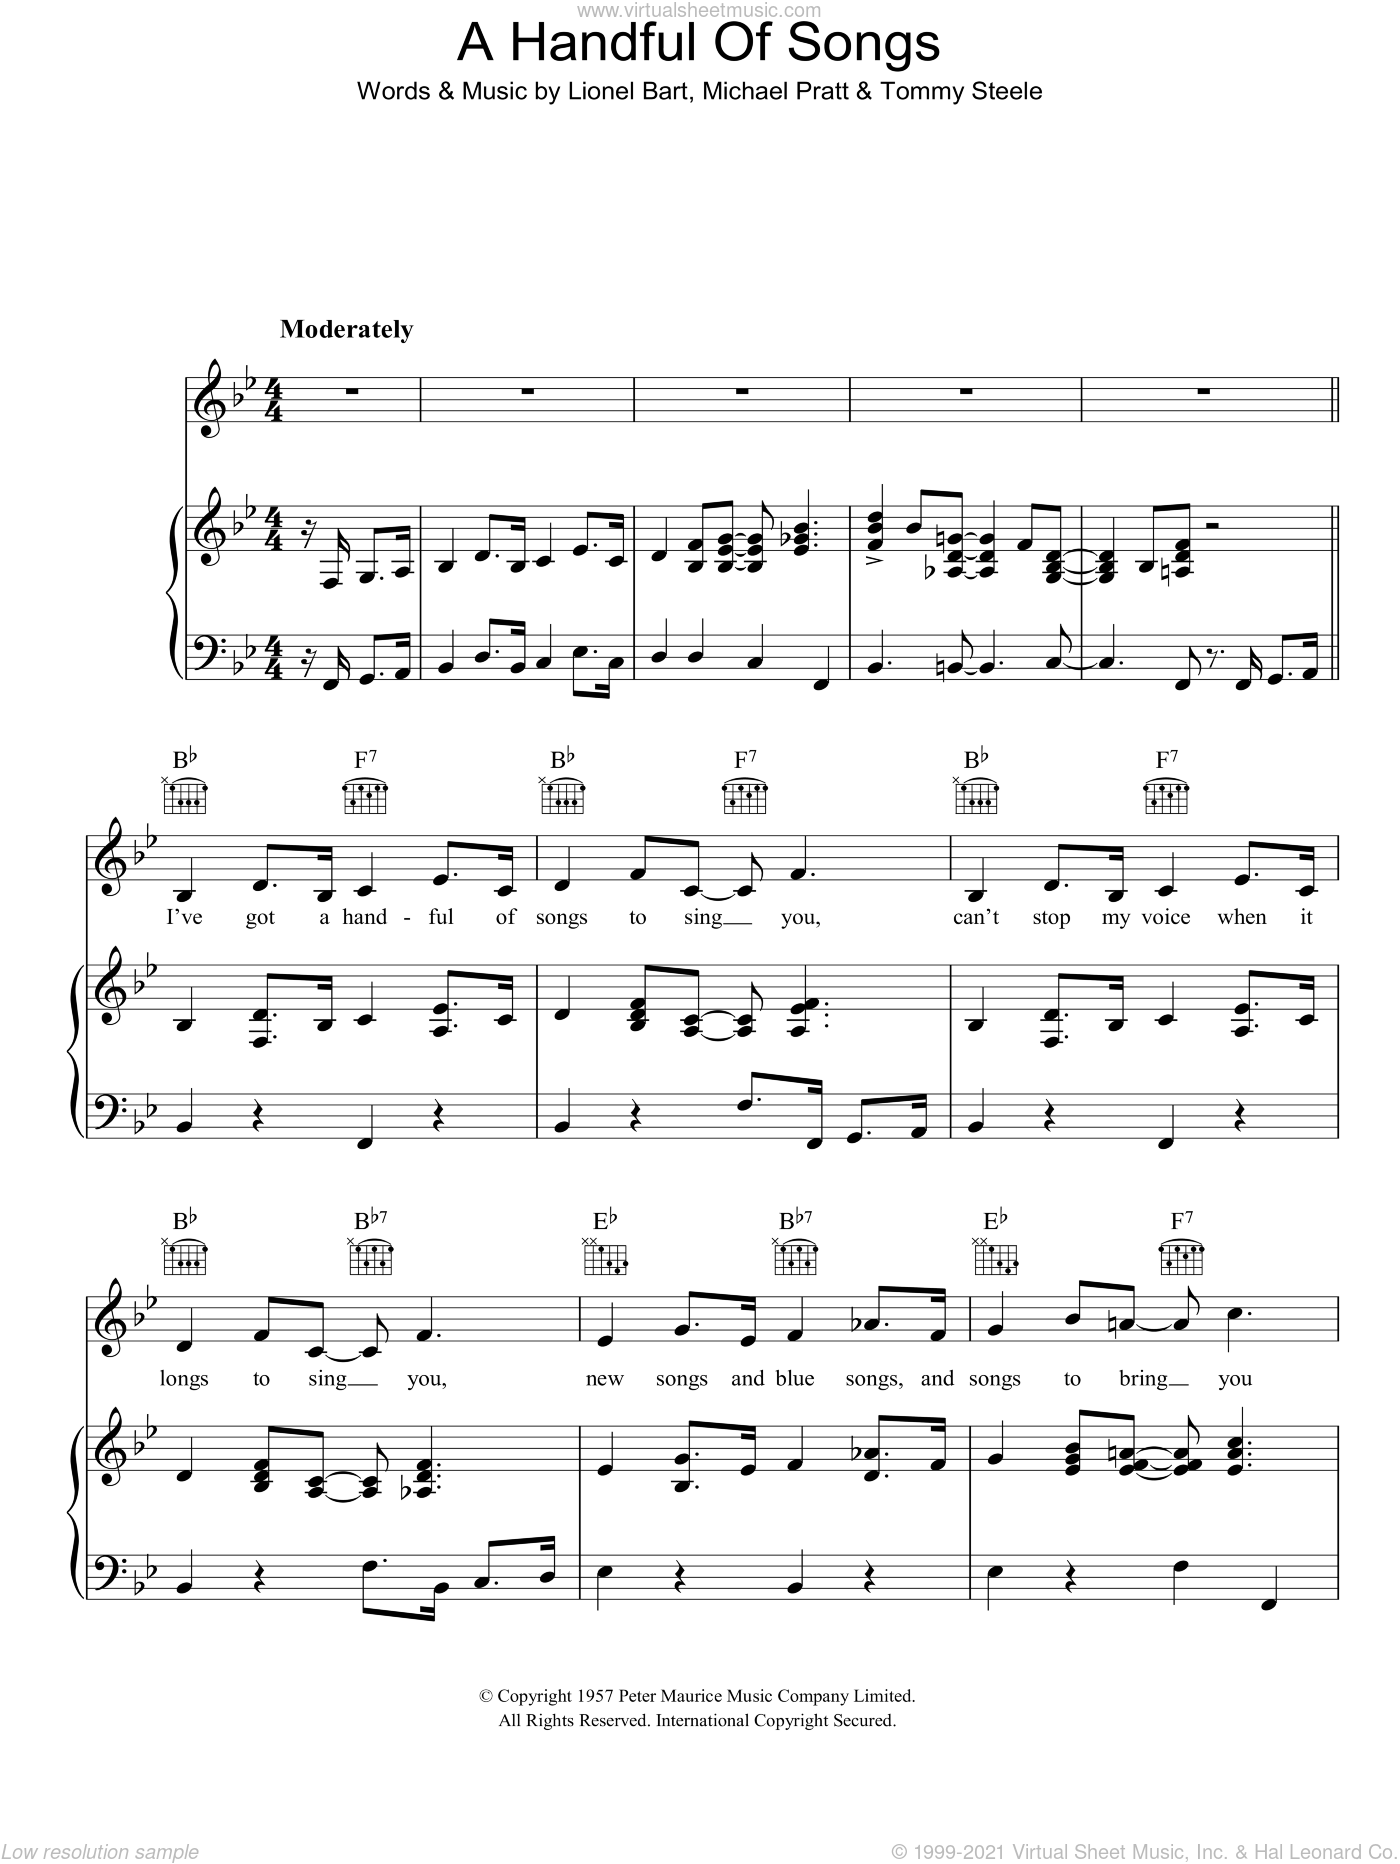 A Handful Of Songs sheet music for voice, piano or guitar by Michael Pratt